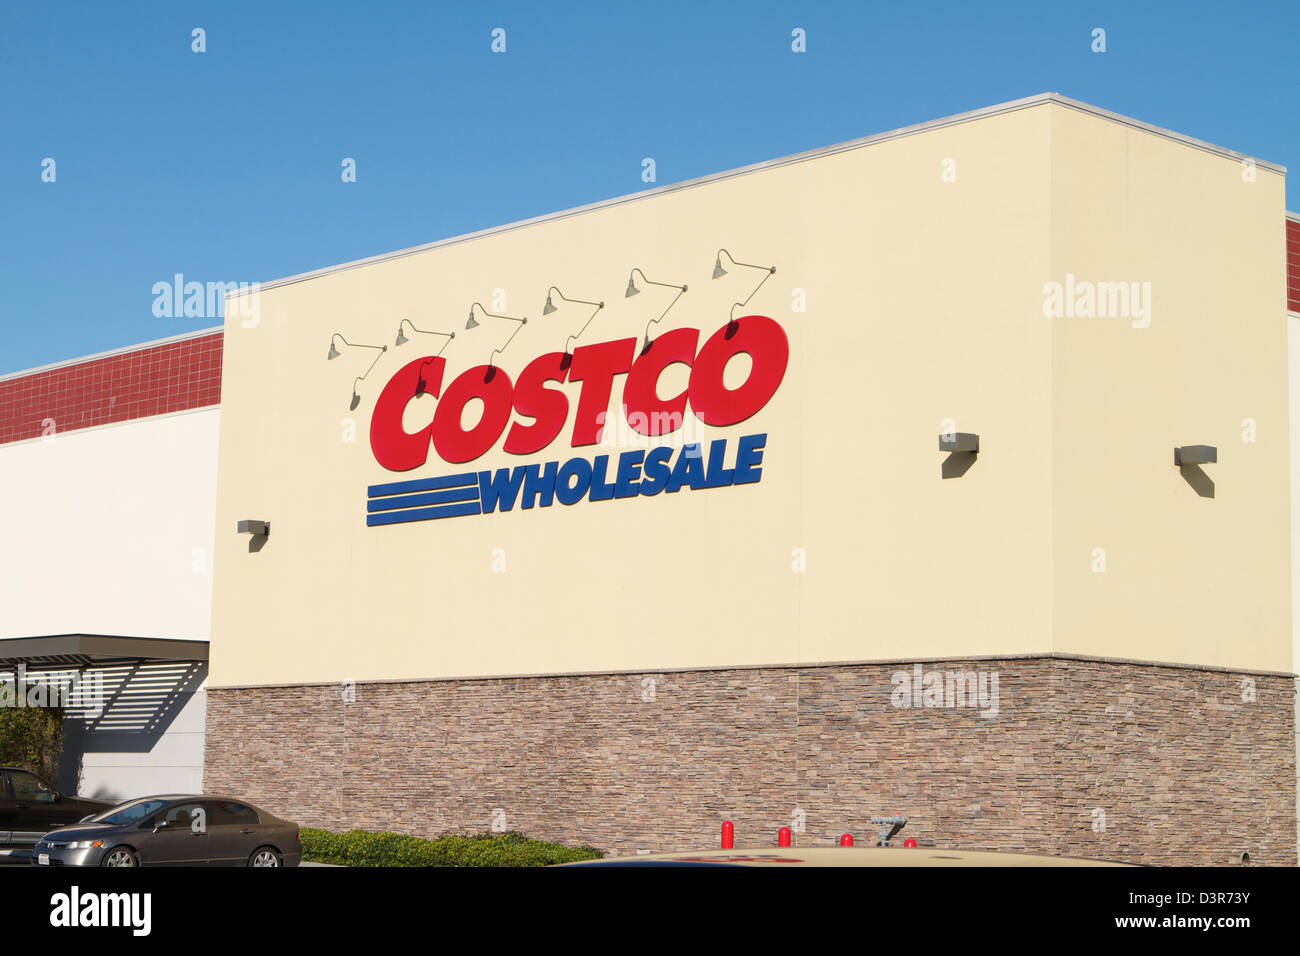 costco sign stock photos costco sign stock images alamy a costco whole shopping club sign on a store in tustin california stock image